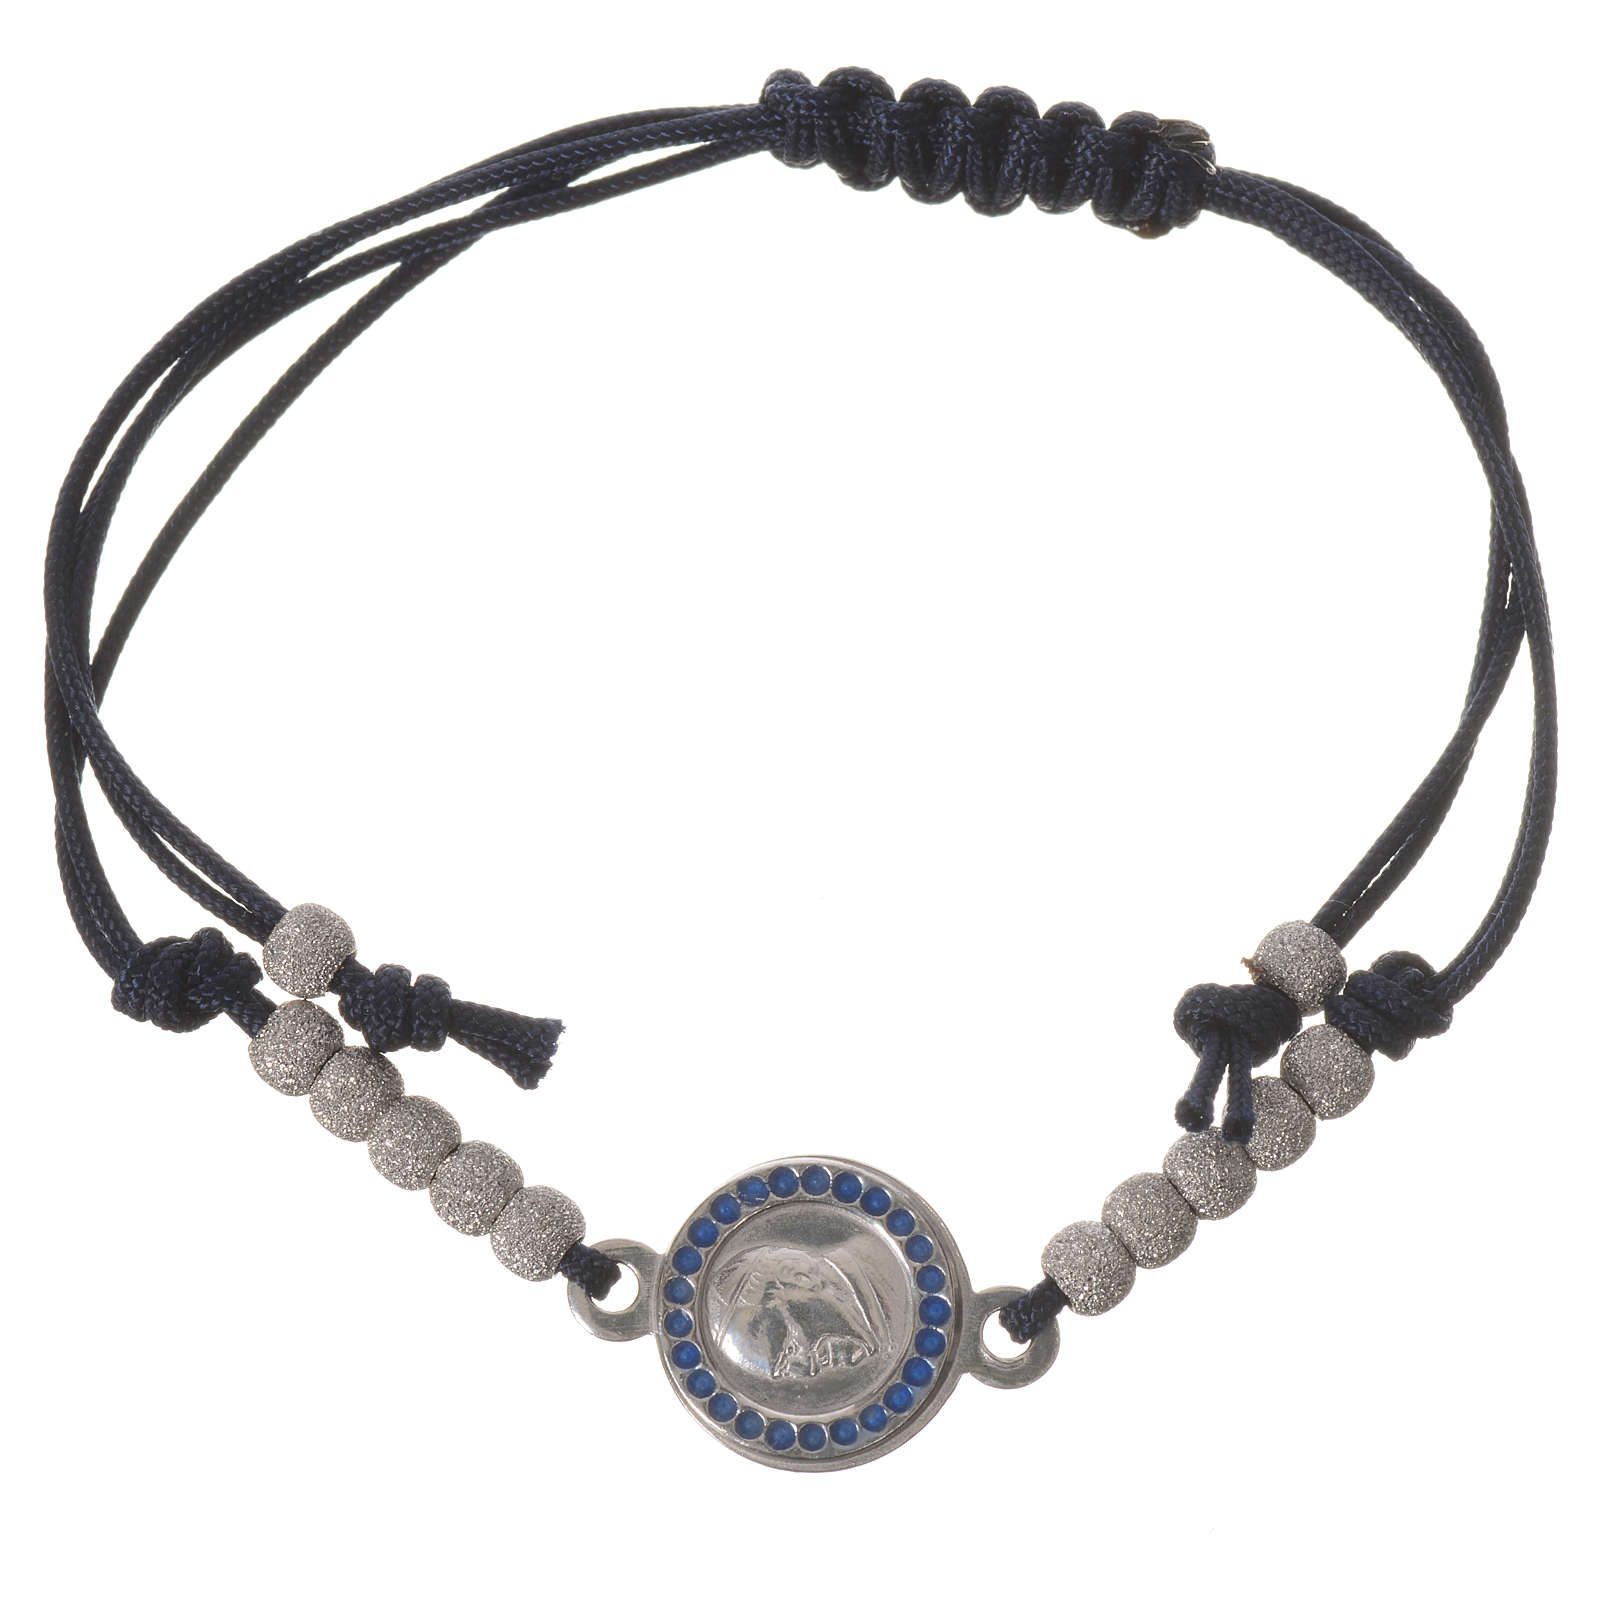 Bracelet with black cord and Pope Francis medal in 800 silver 4